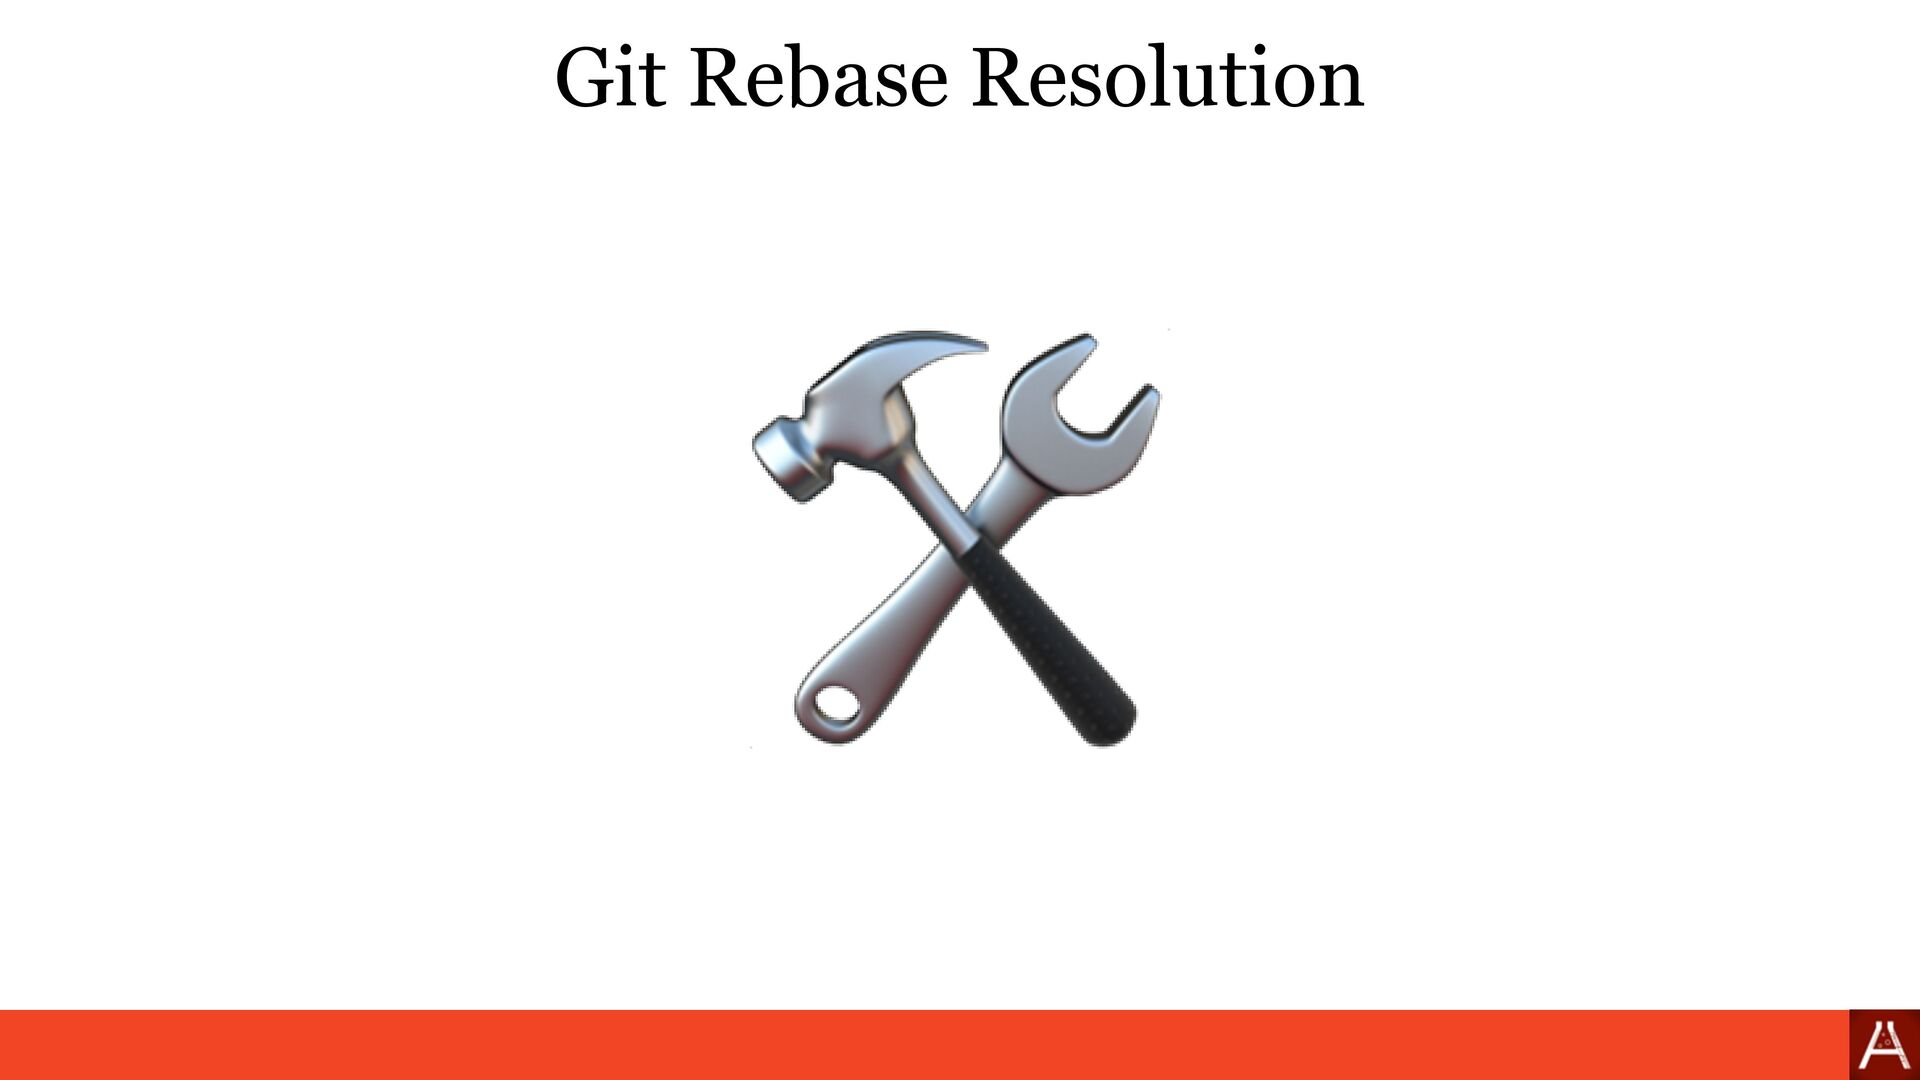 Git Commit (fixup) git commit --fixup 2dc5e2e29...